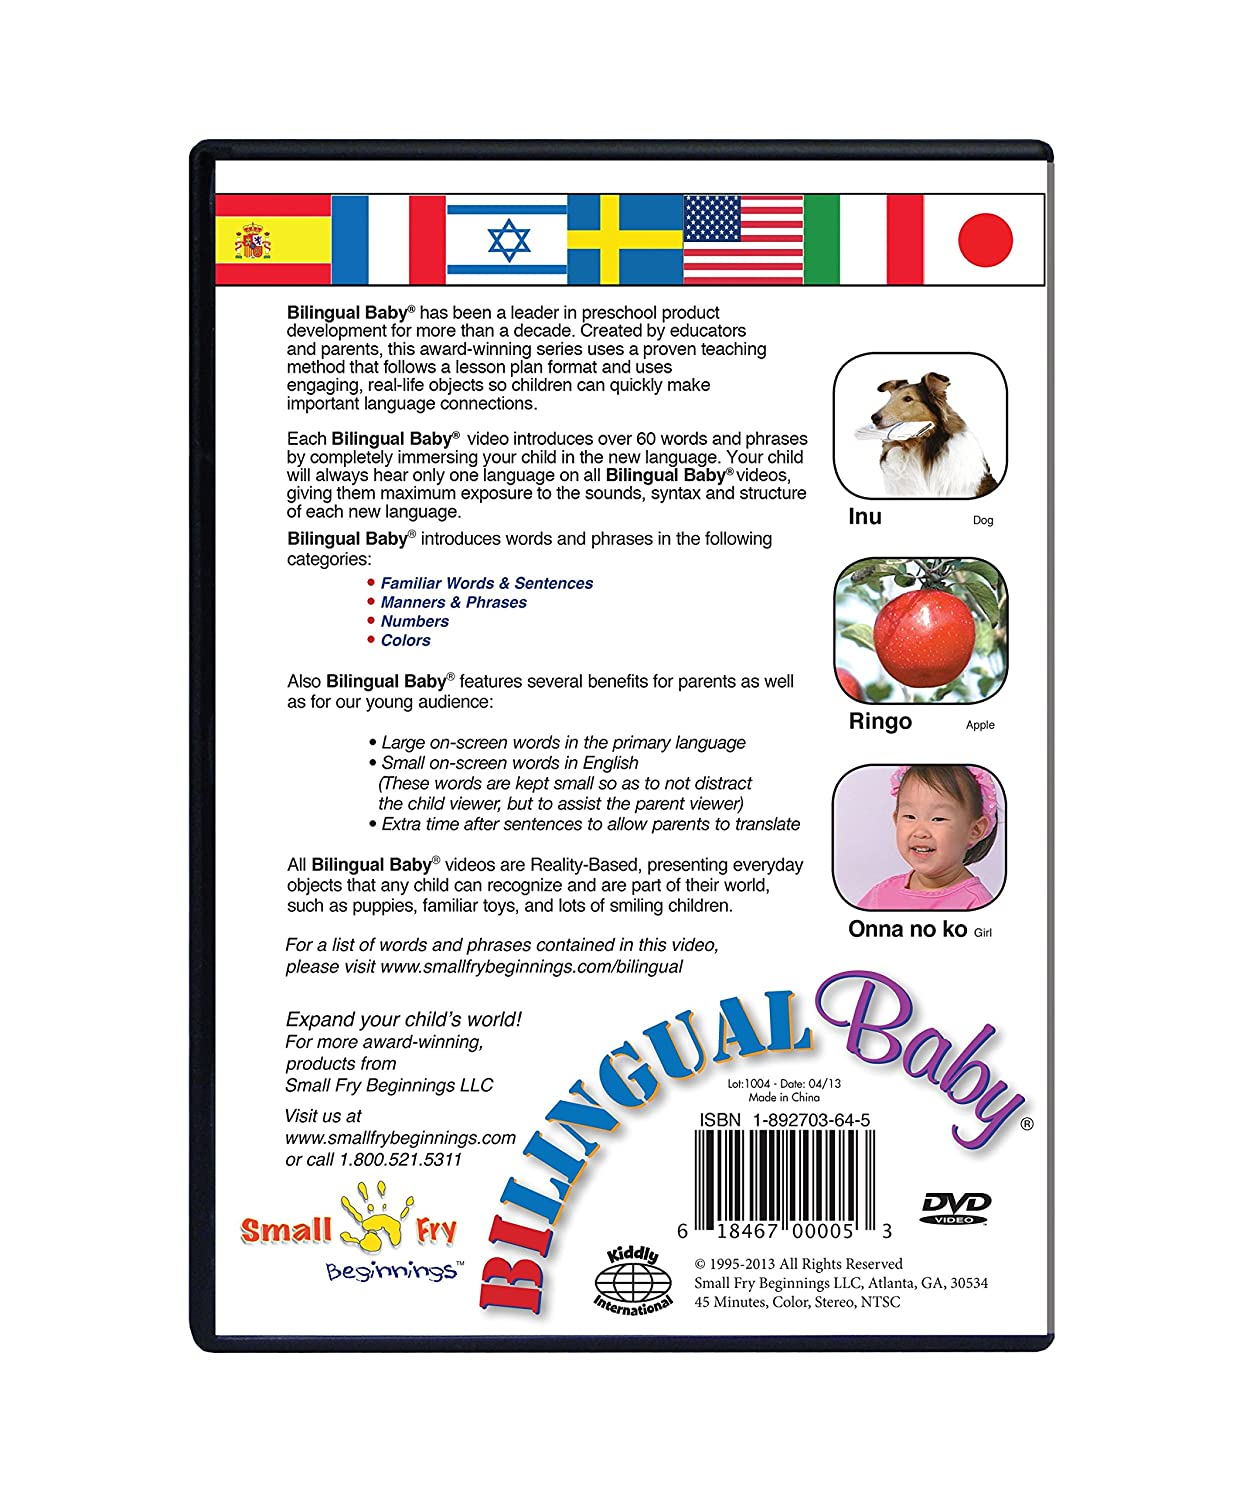 Amazon Bilingual Baby Learn Japanese Total Immersion DVD For Babies And Toddlers By Small Fry Beginnings Movies TV